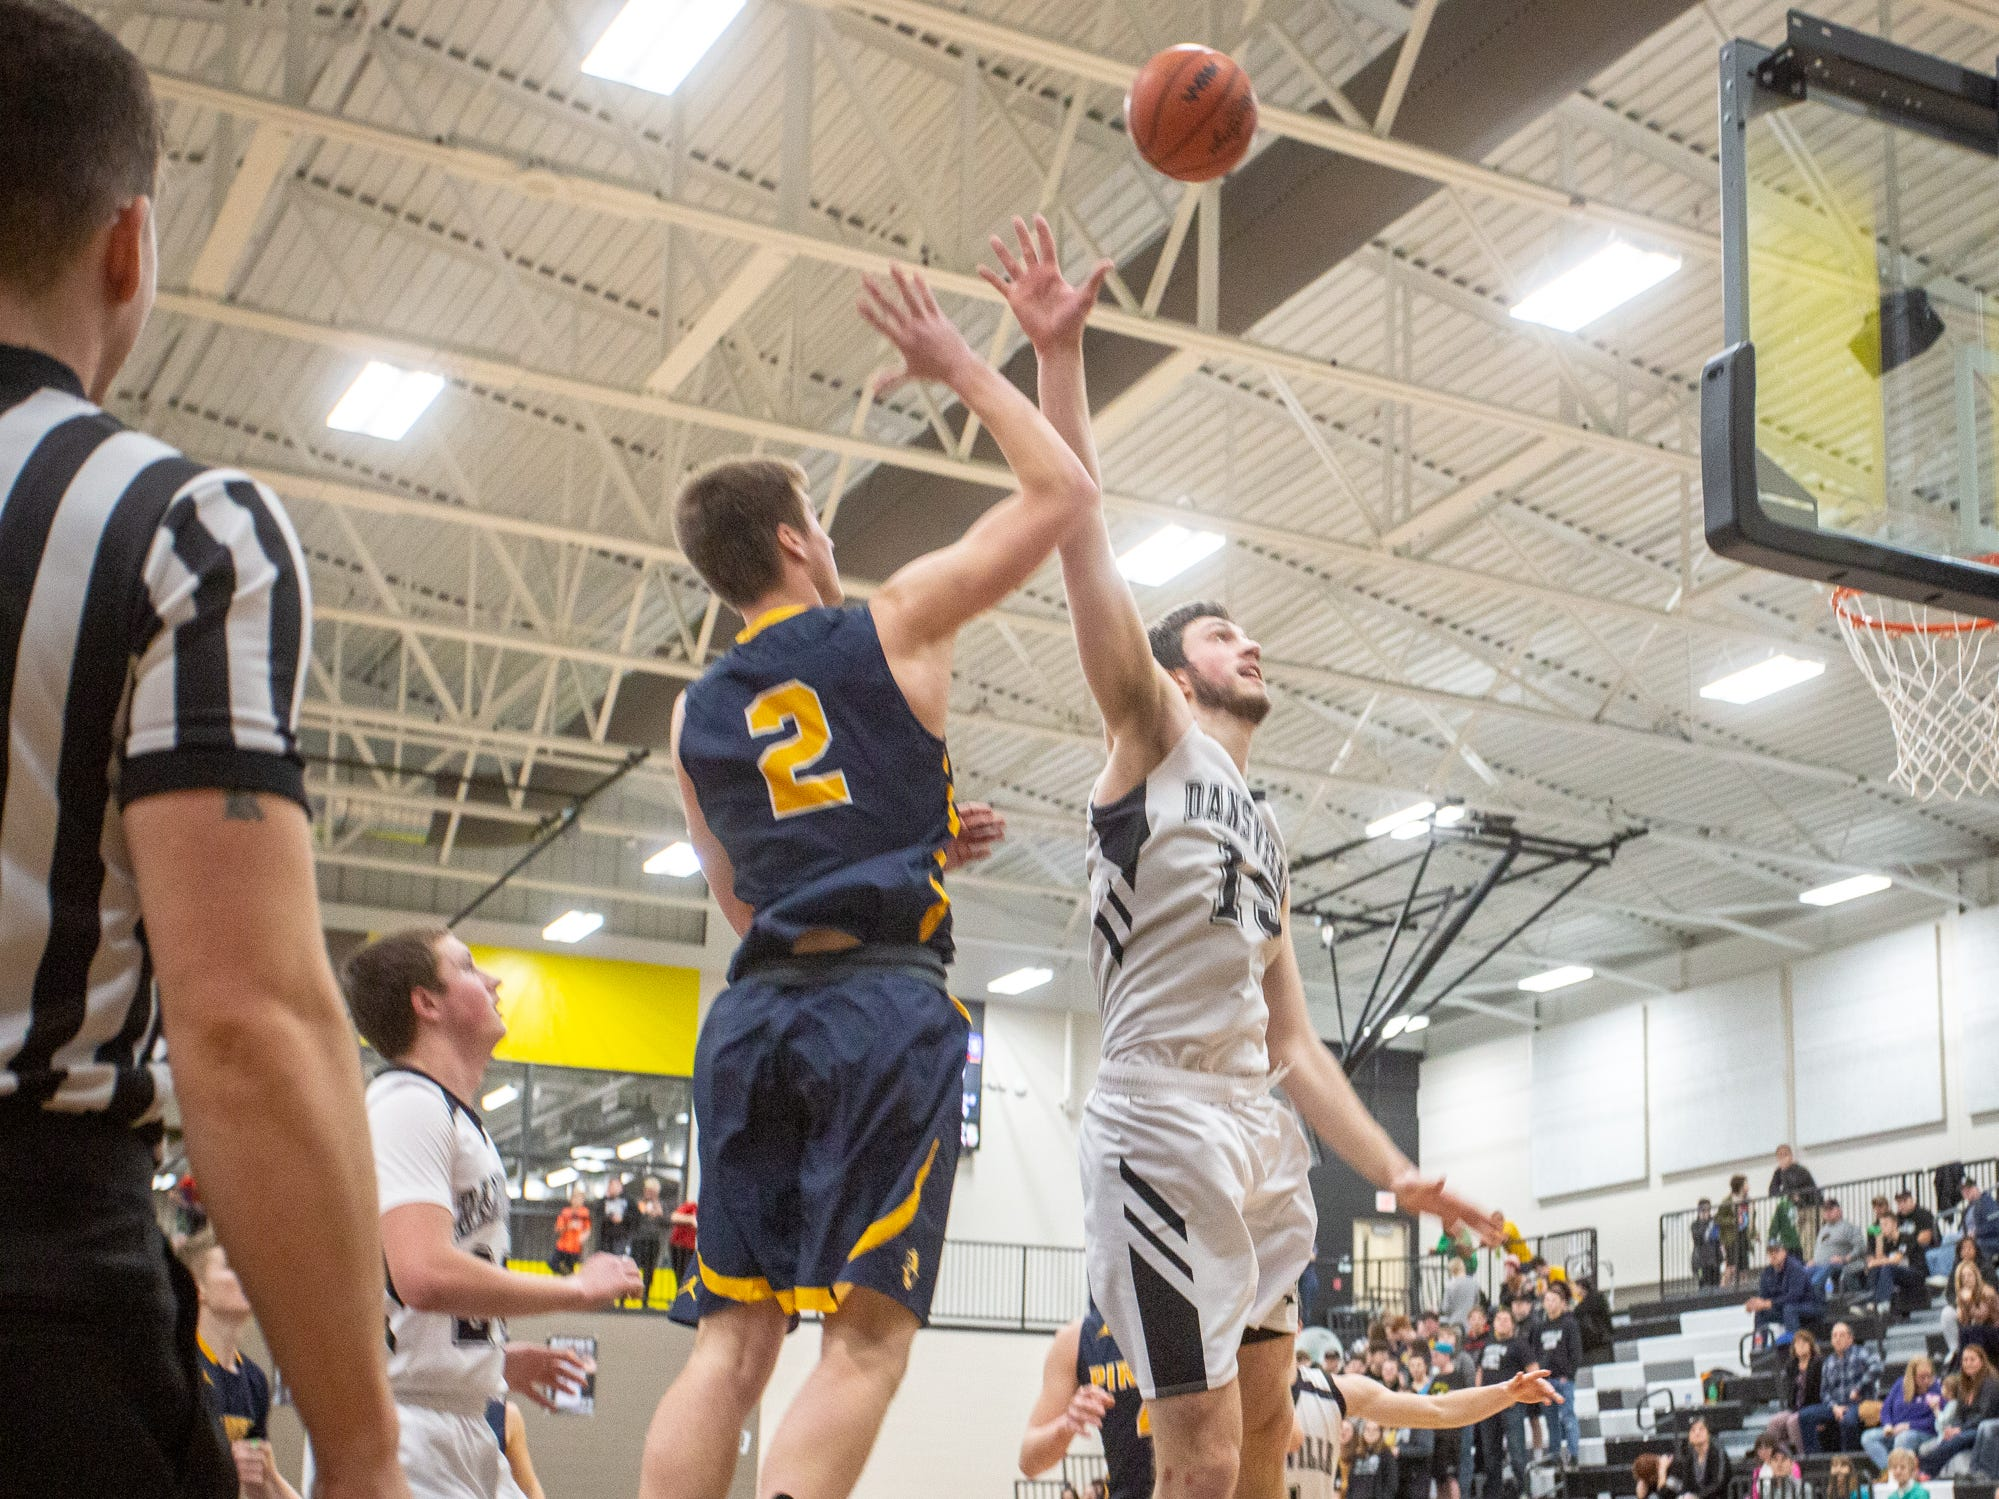 Dansville senior Caleb Hodgson blocks a shot by Pewamo-Westphalia's Nathan Wirth on Thursday, Jan. 17, 2019.